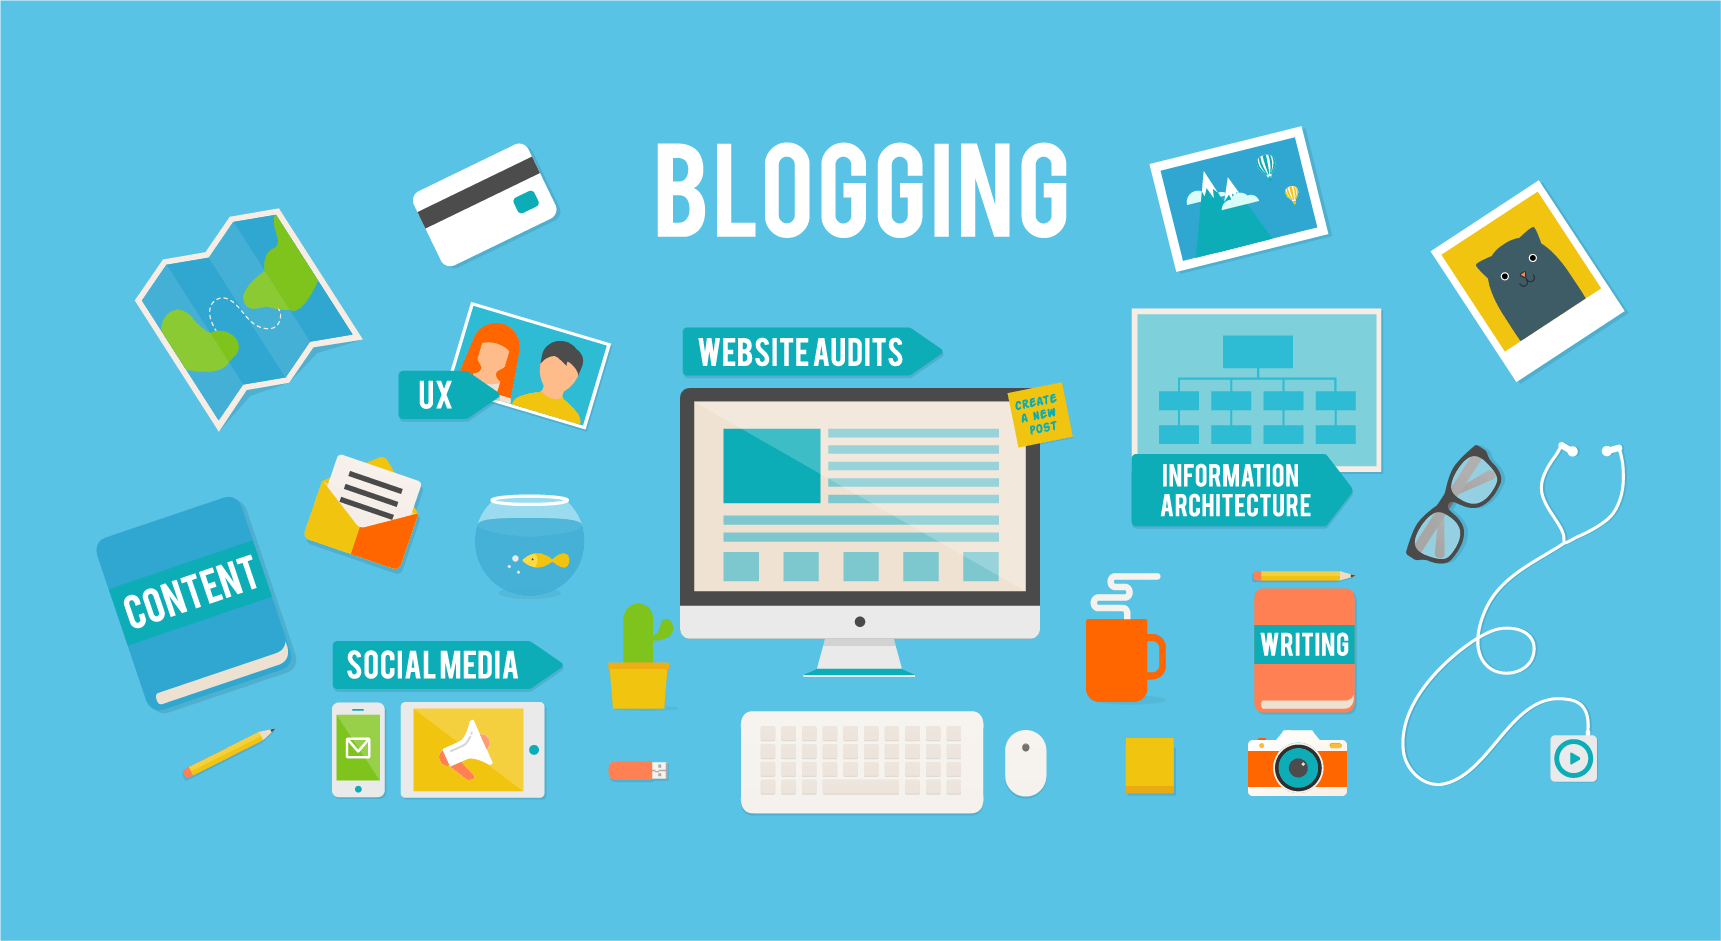 Steps you must take to create & maintain a successful blog.